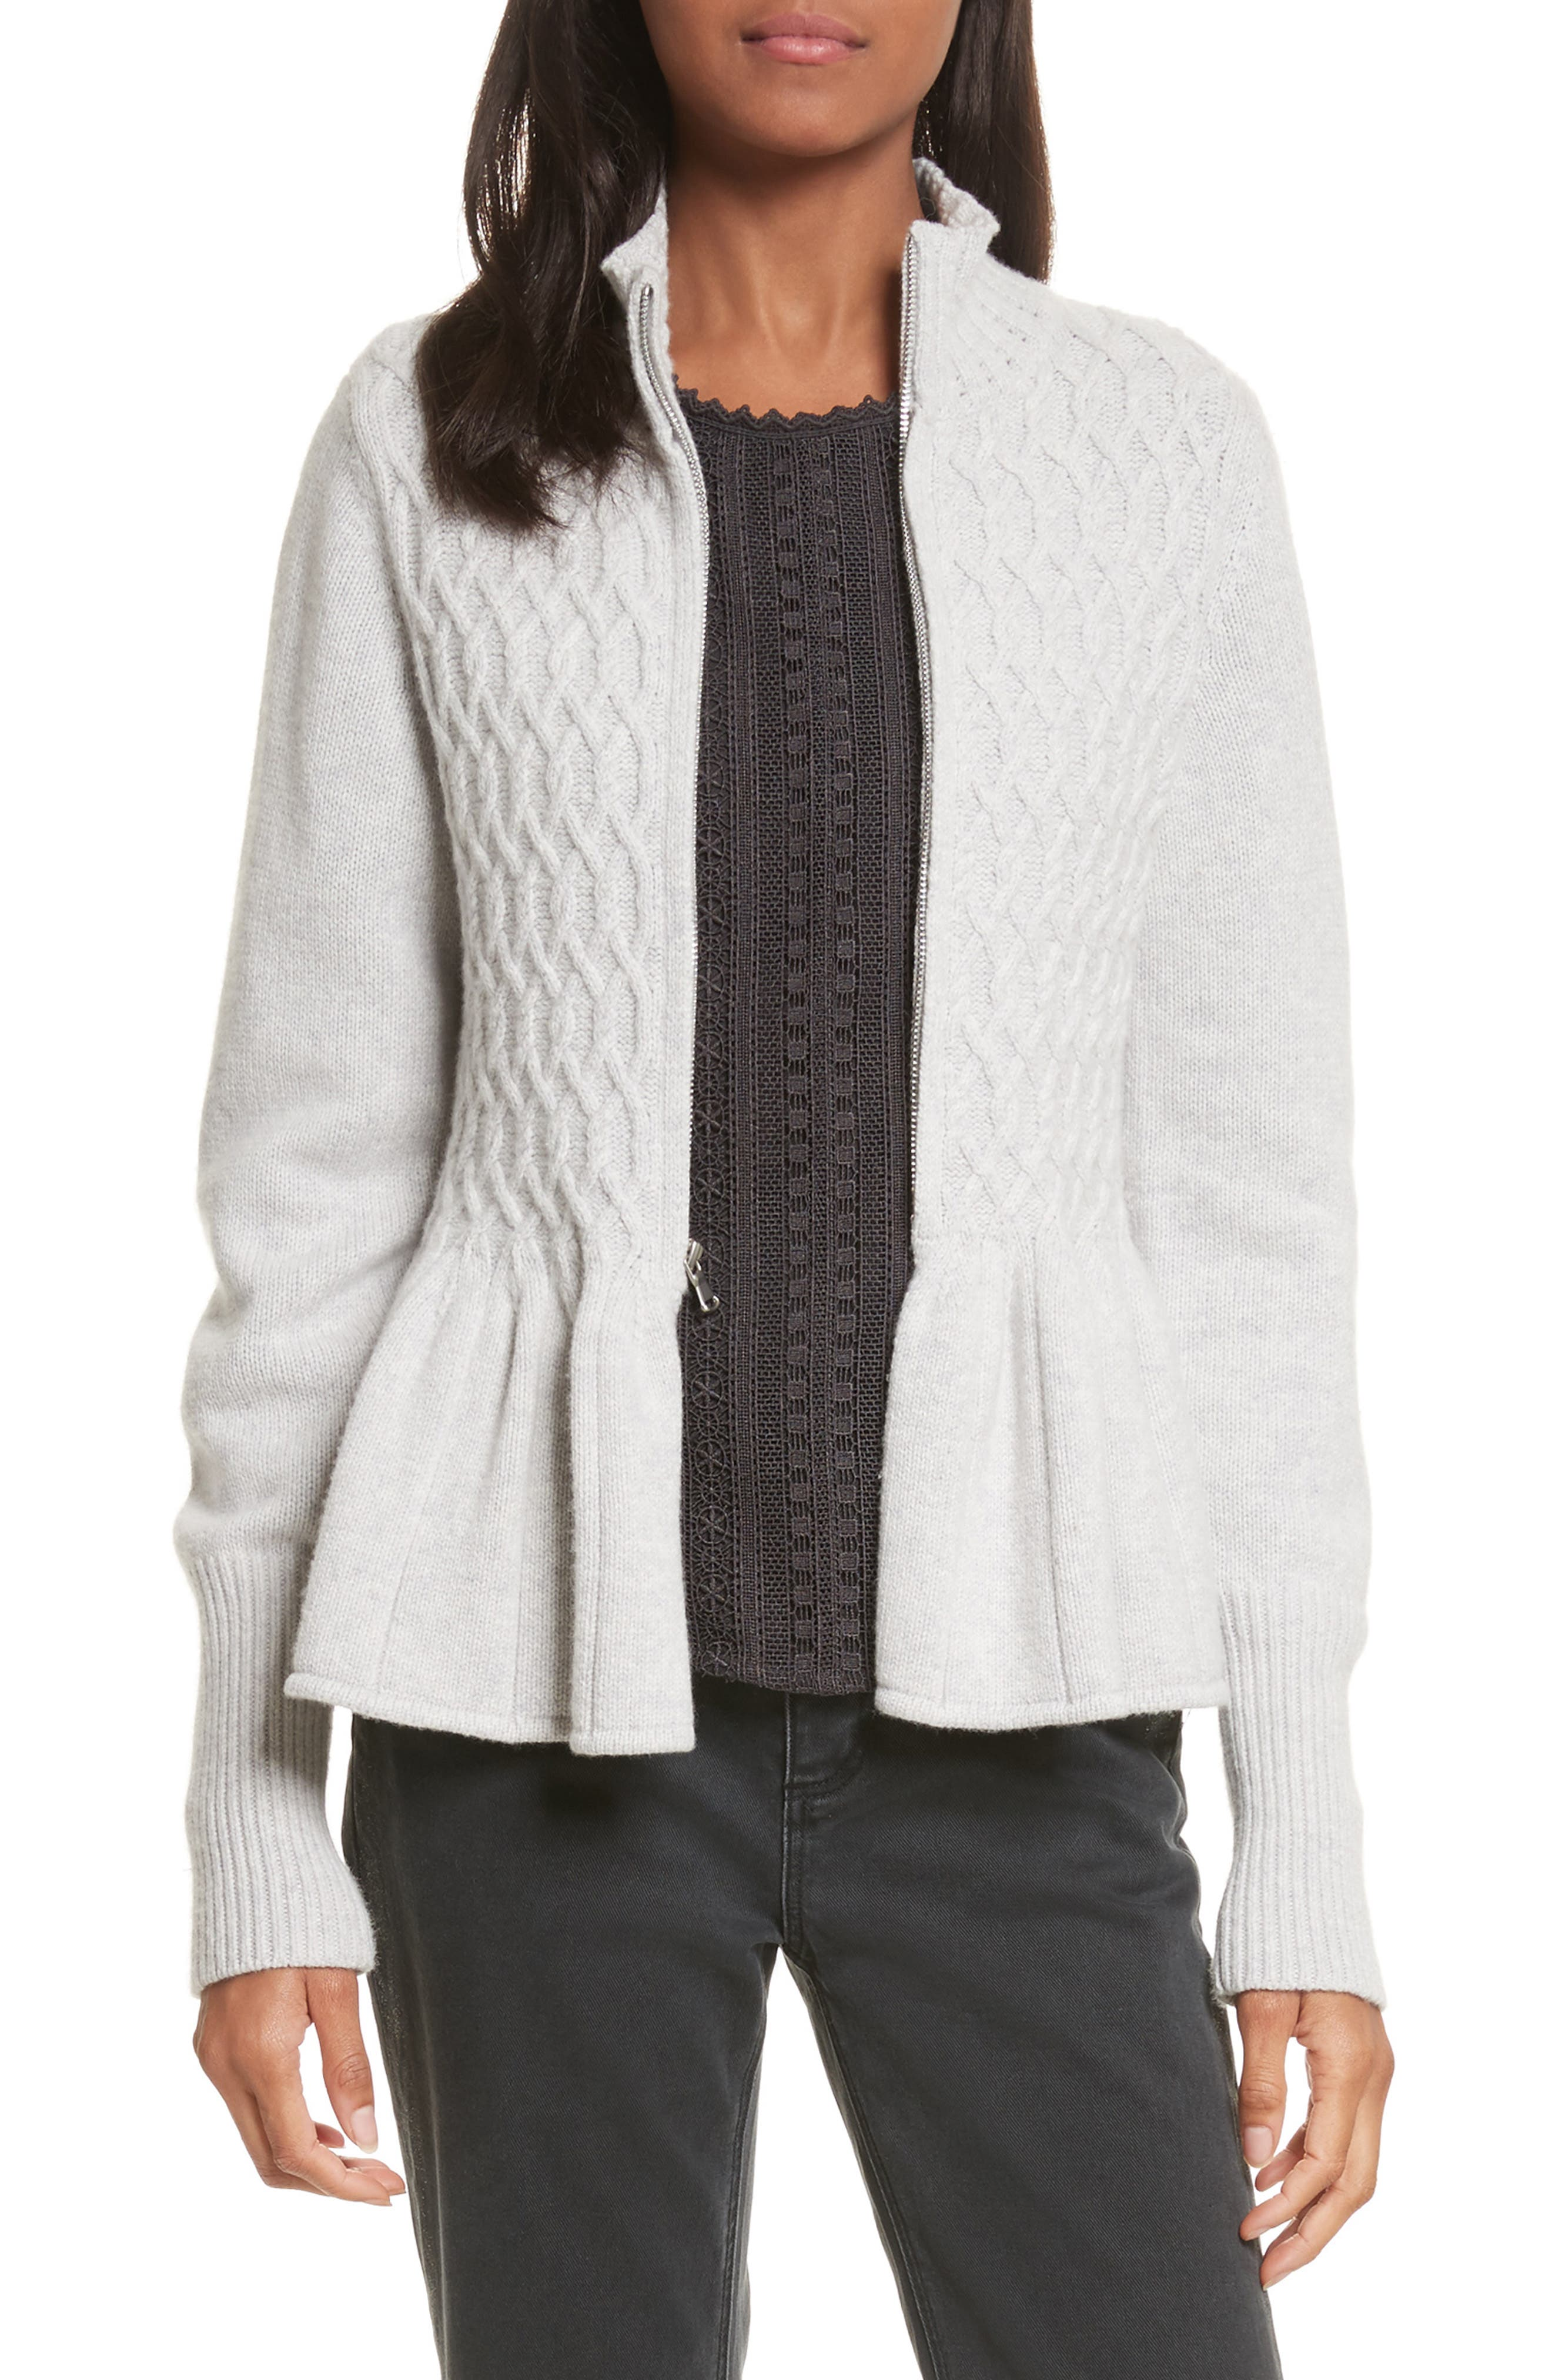 Alternate Image 1 Selected - La Vie Rebecca Taylor Cable Knit Front Zip Cardigan